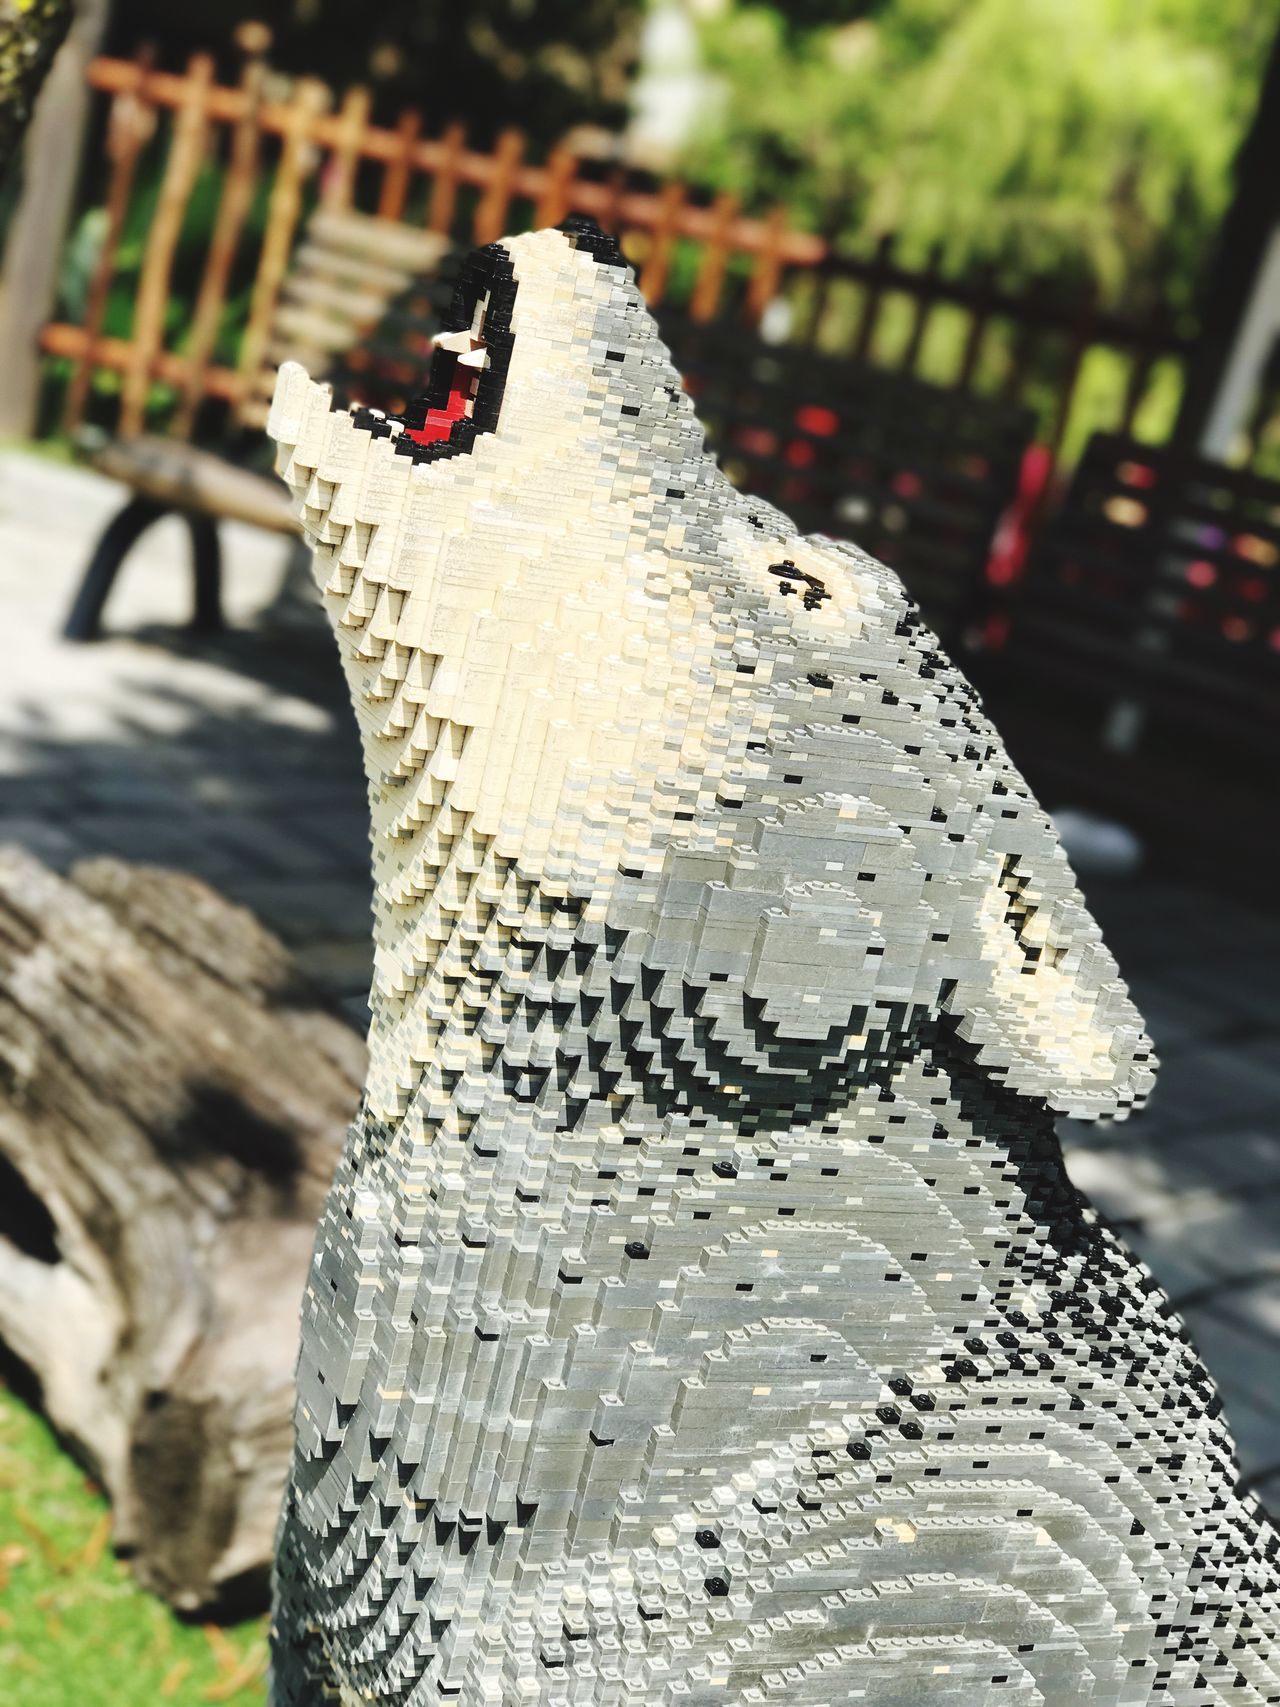 Focus On Foreground Day Sunlight Close-up No People Outdoors Nature Animal Themes Wolf Mammal Wolf made of Lego Bricks LEGO Legophotography